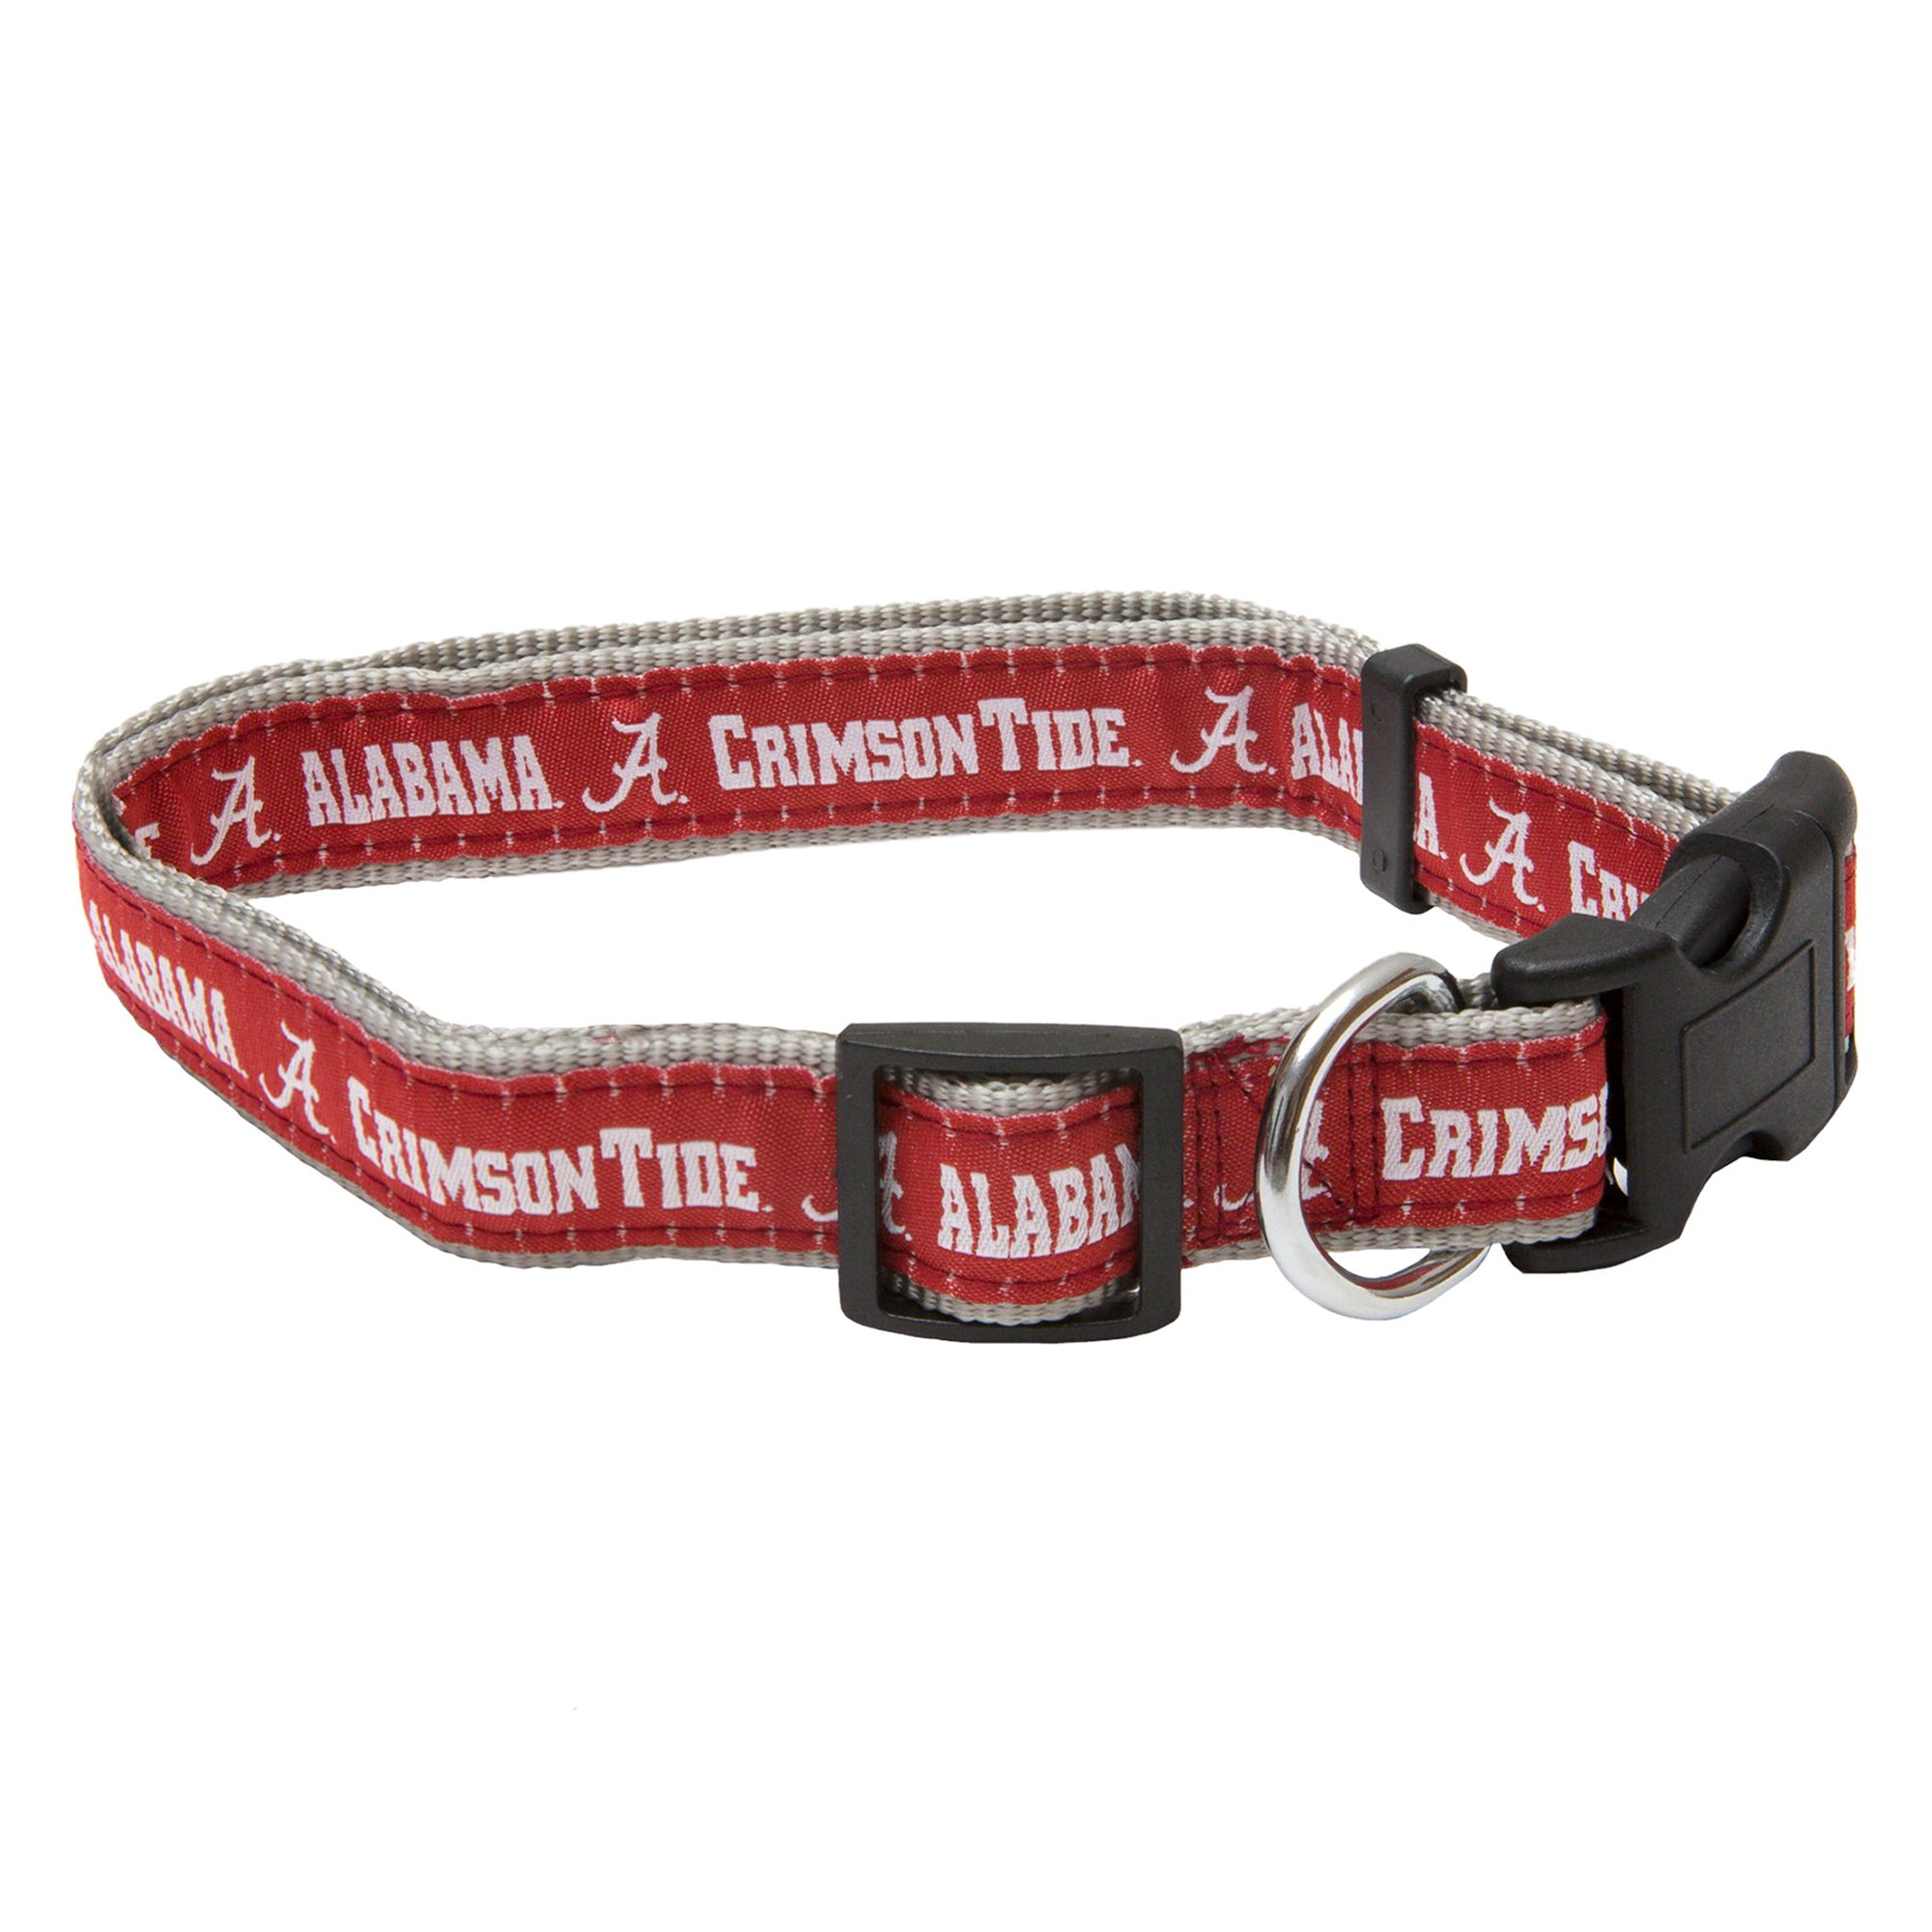 University of Alabama Crimson Tide Collar size: Small, Red, Pets First 5217823